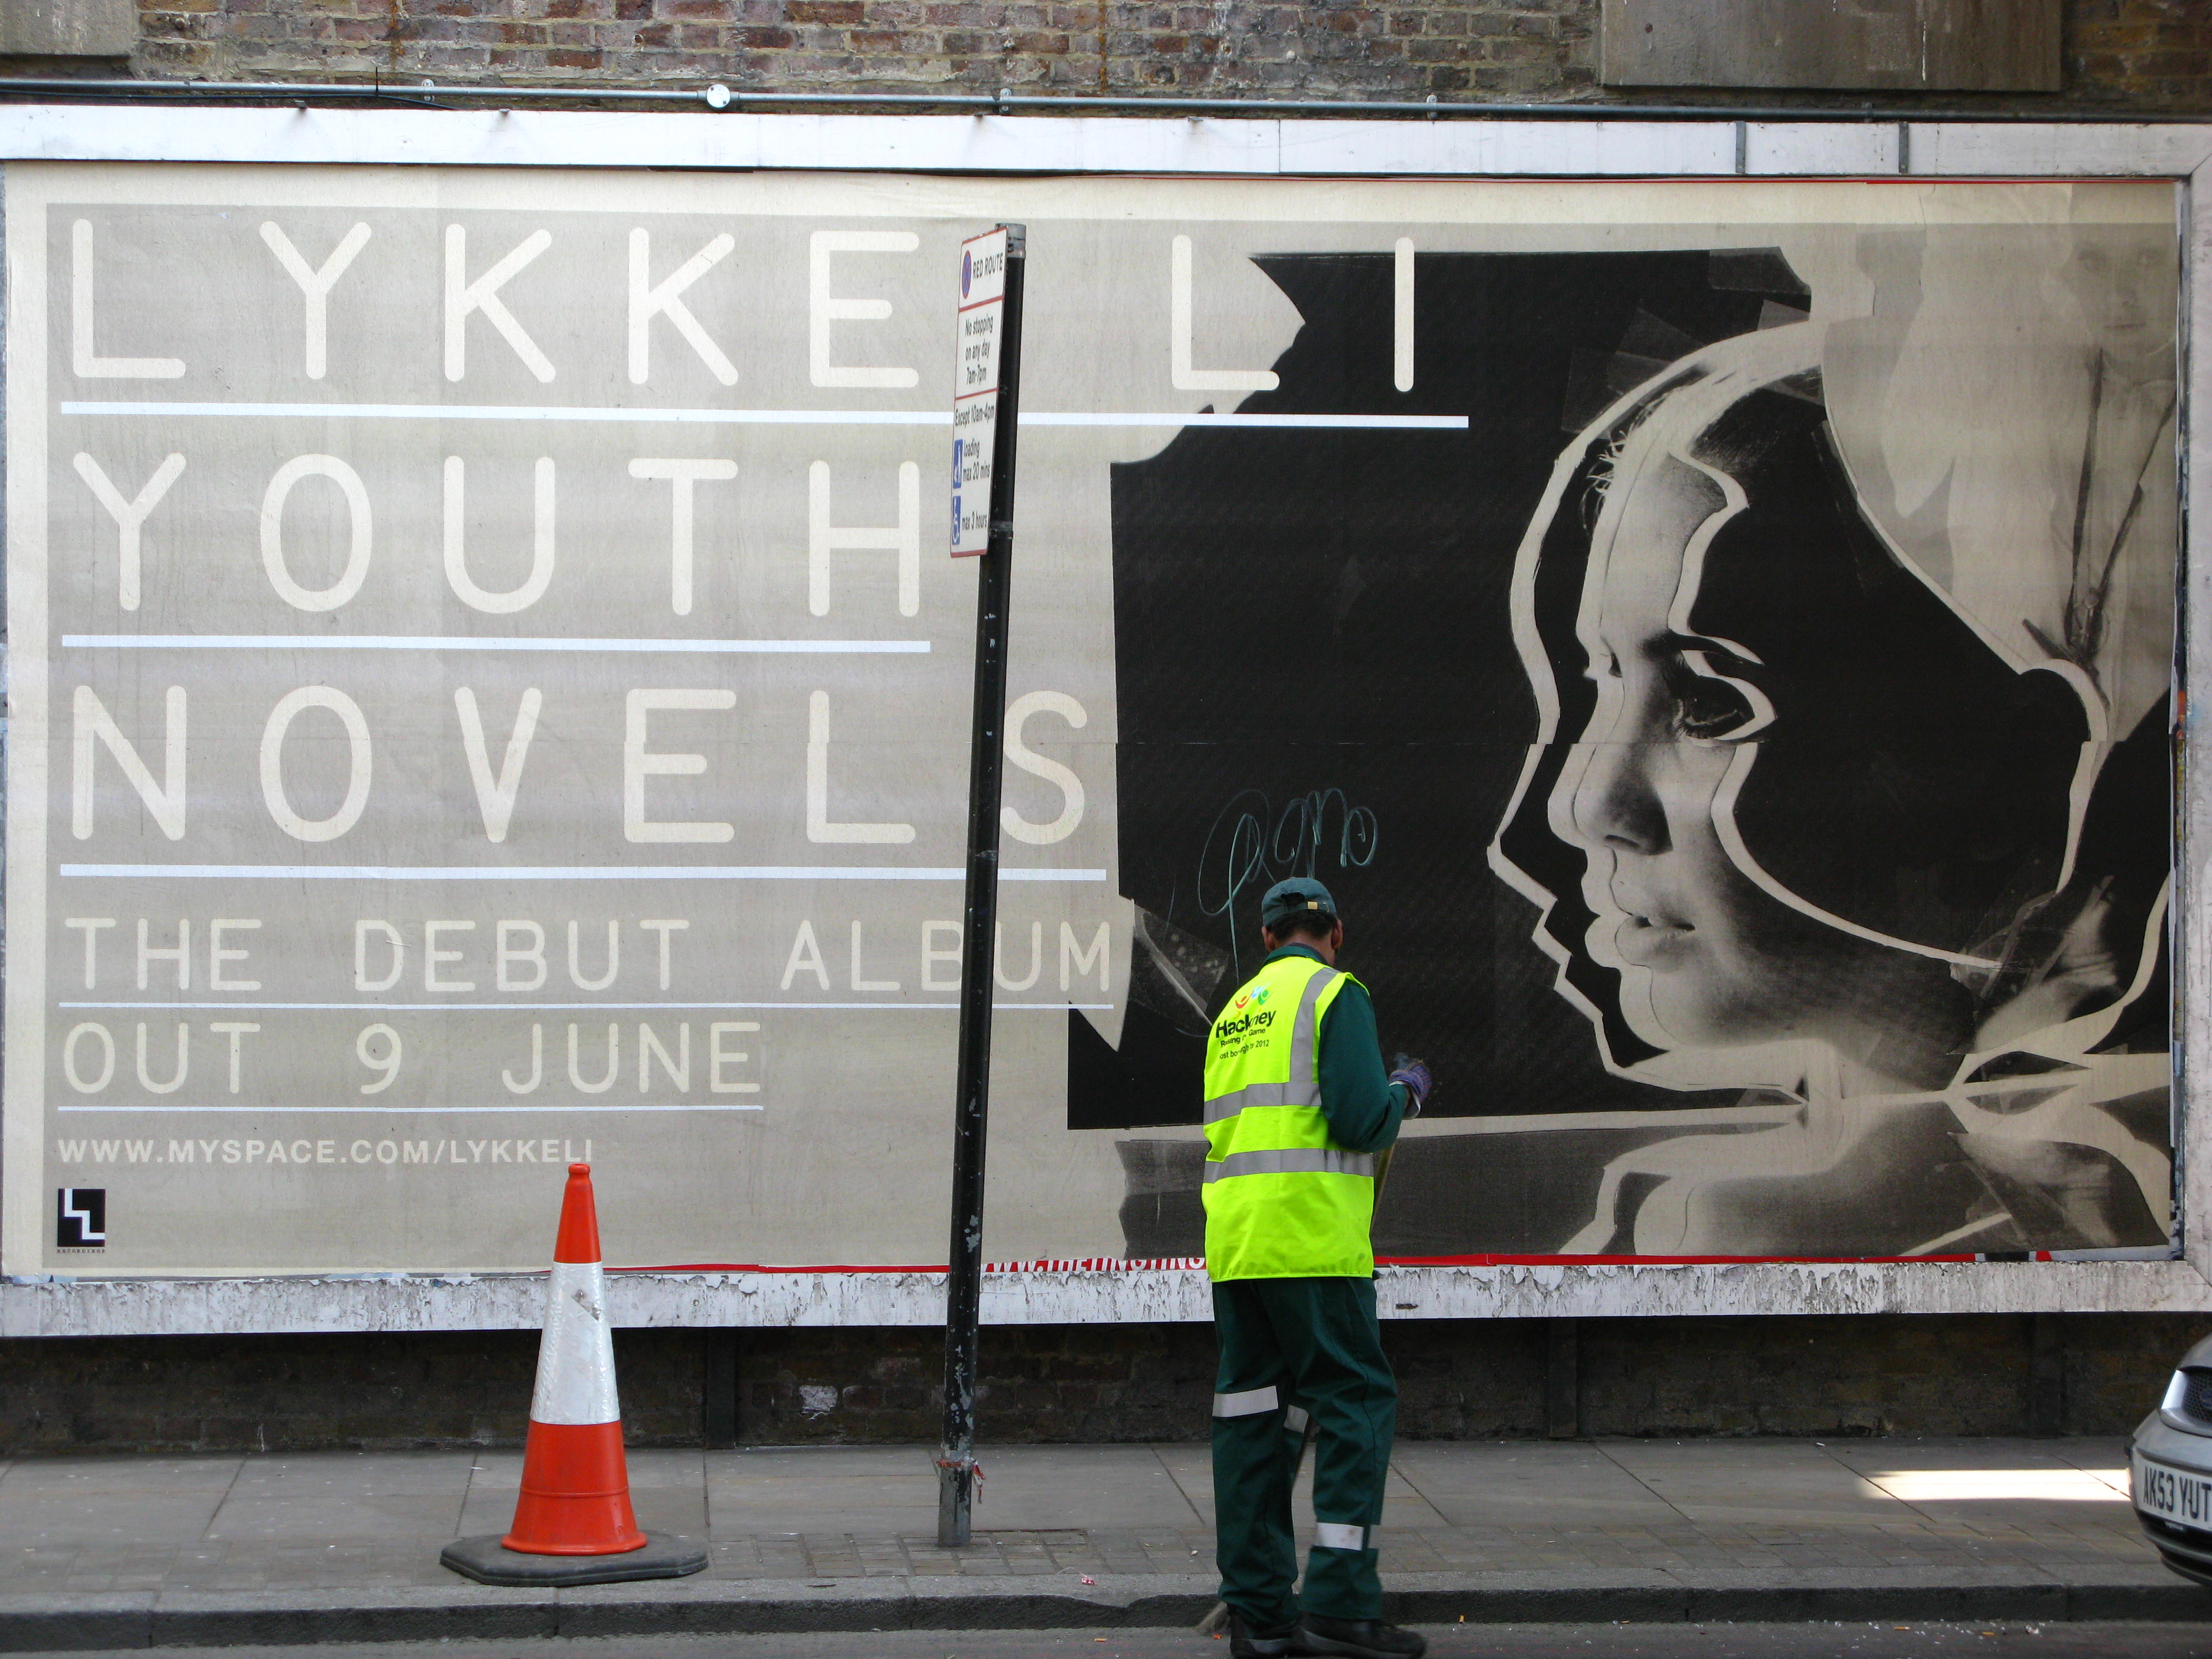 LYKKE LI: youth novels